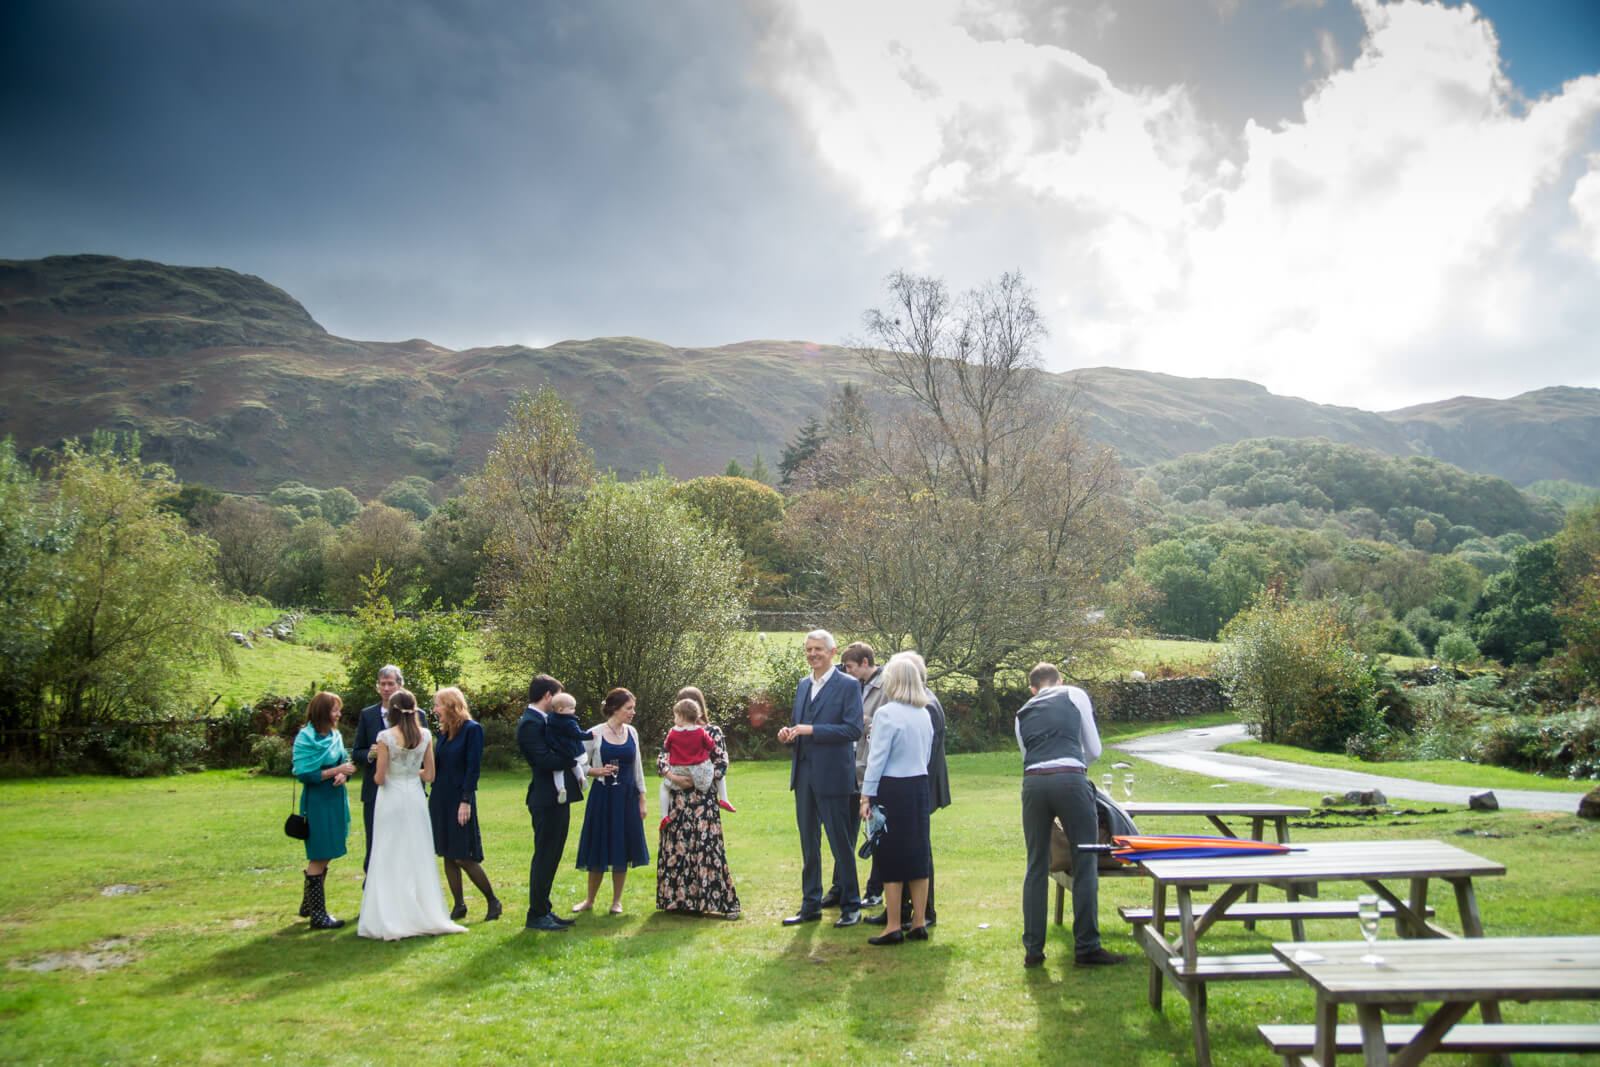 Guests on the lawn with lake district mountains in the background